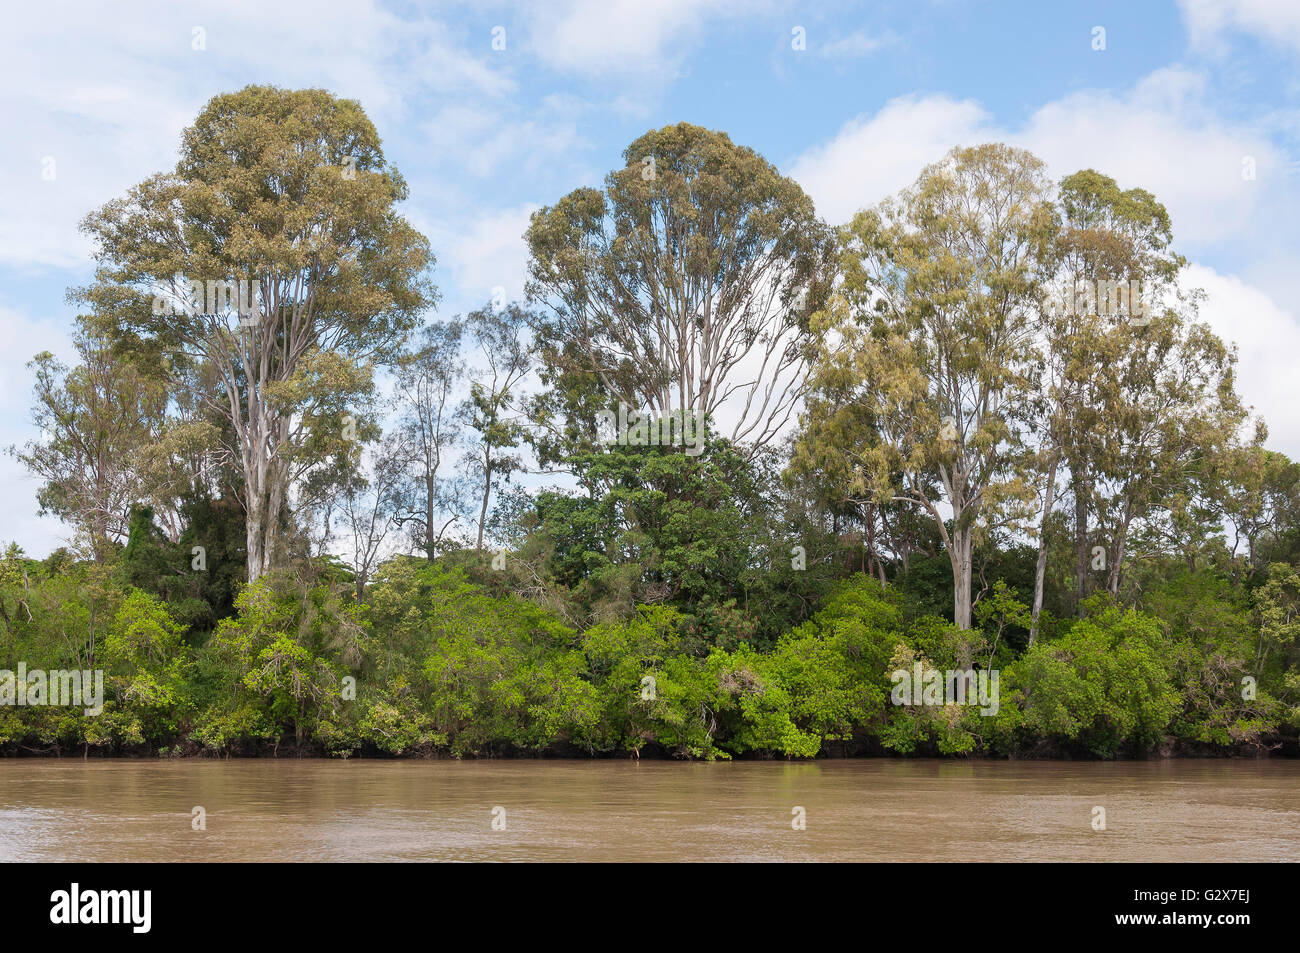 Mangrove vegetation on banks of Brisbane River, Fig Tree Pocket, Brisbane, Queensland, Australia - Stock Image